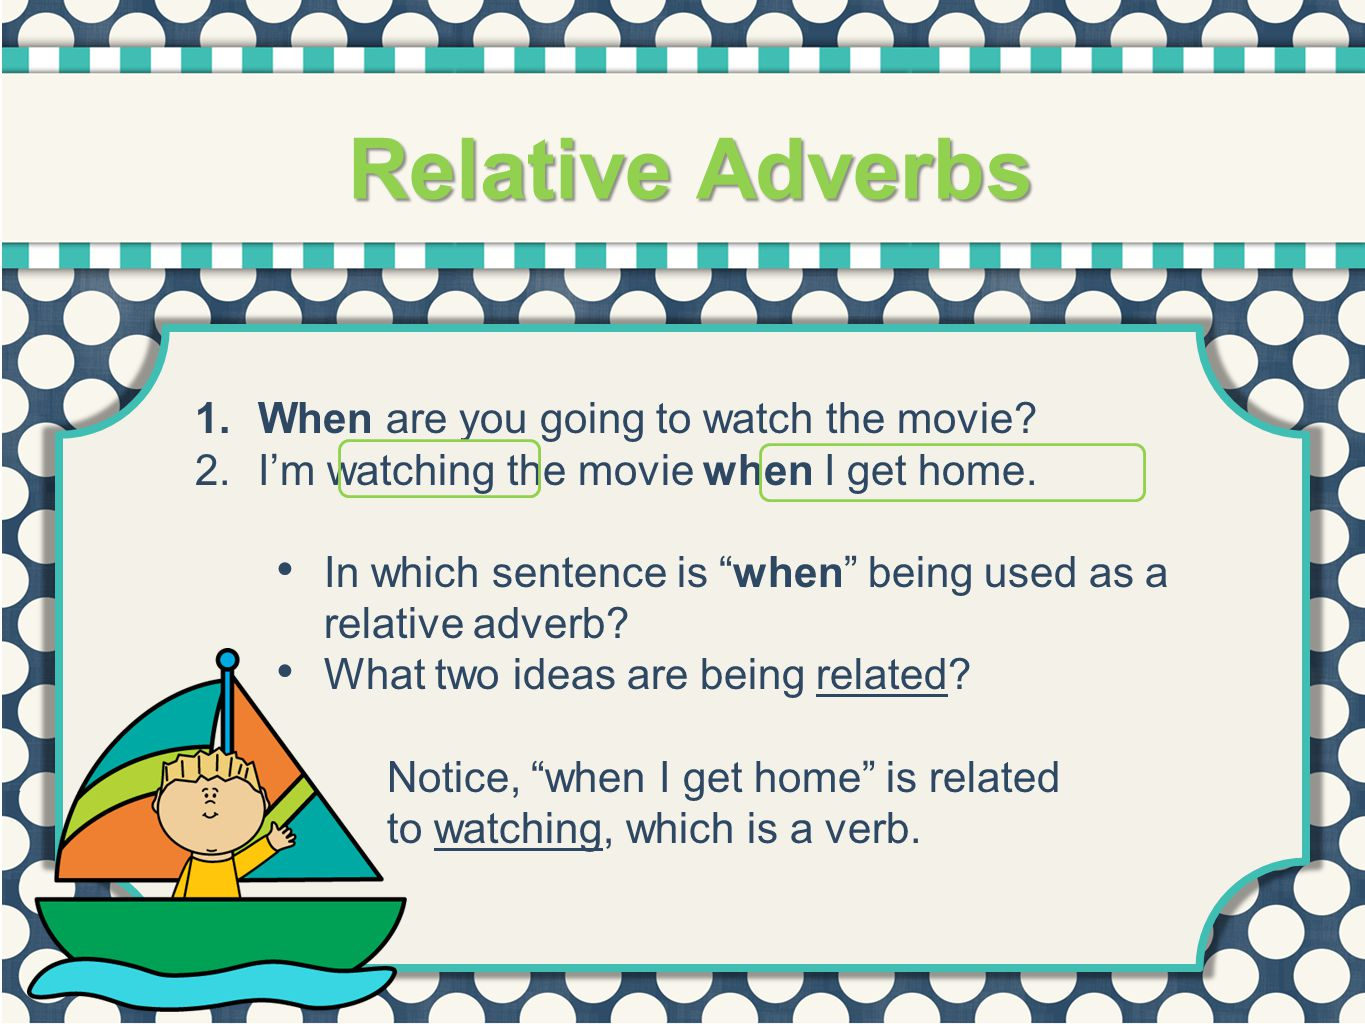 Relative Adverbs When are you going to watch the movie